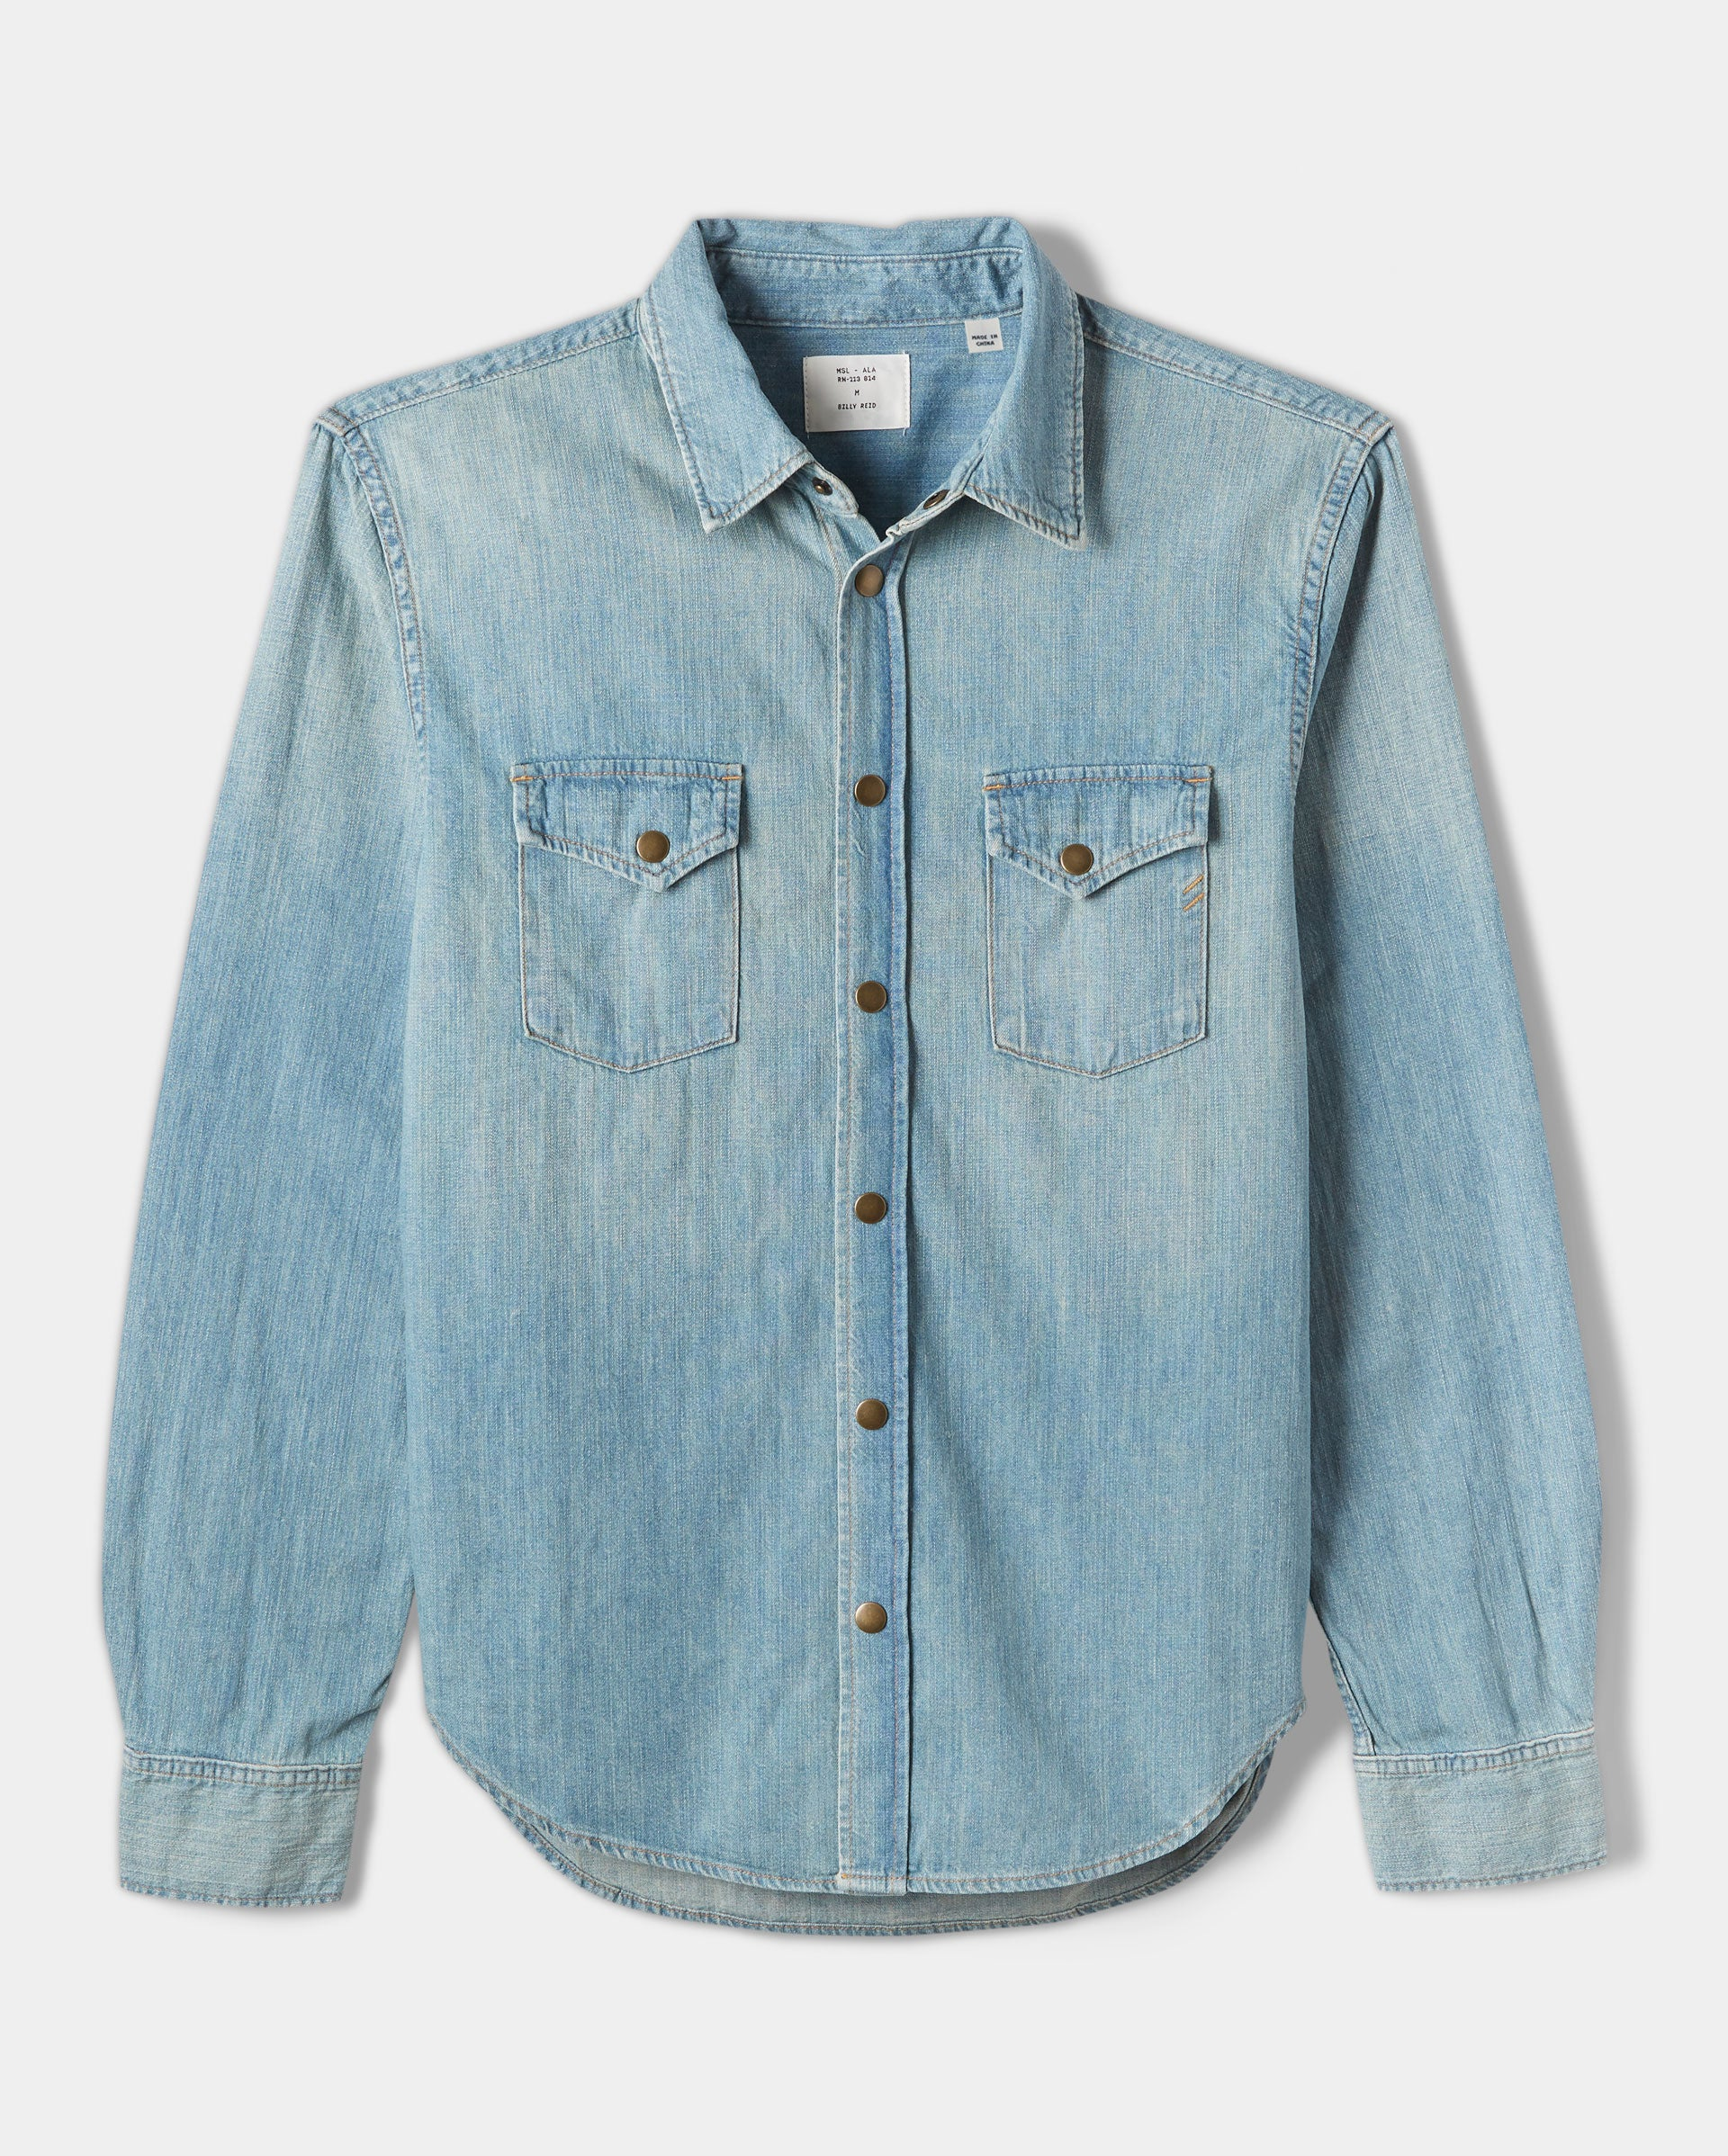 Billy Reid Denim Shirt